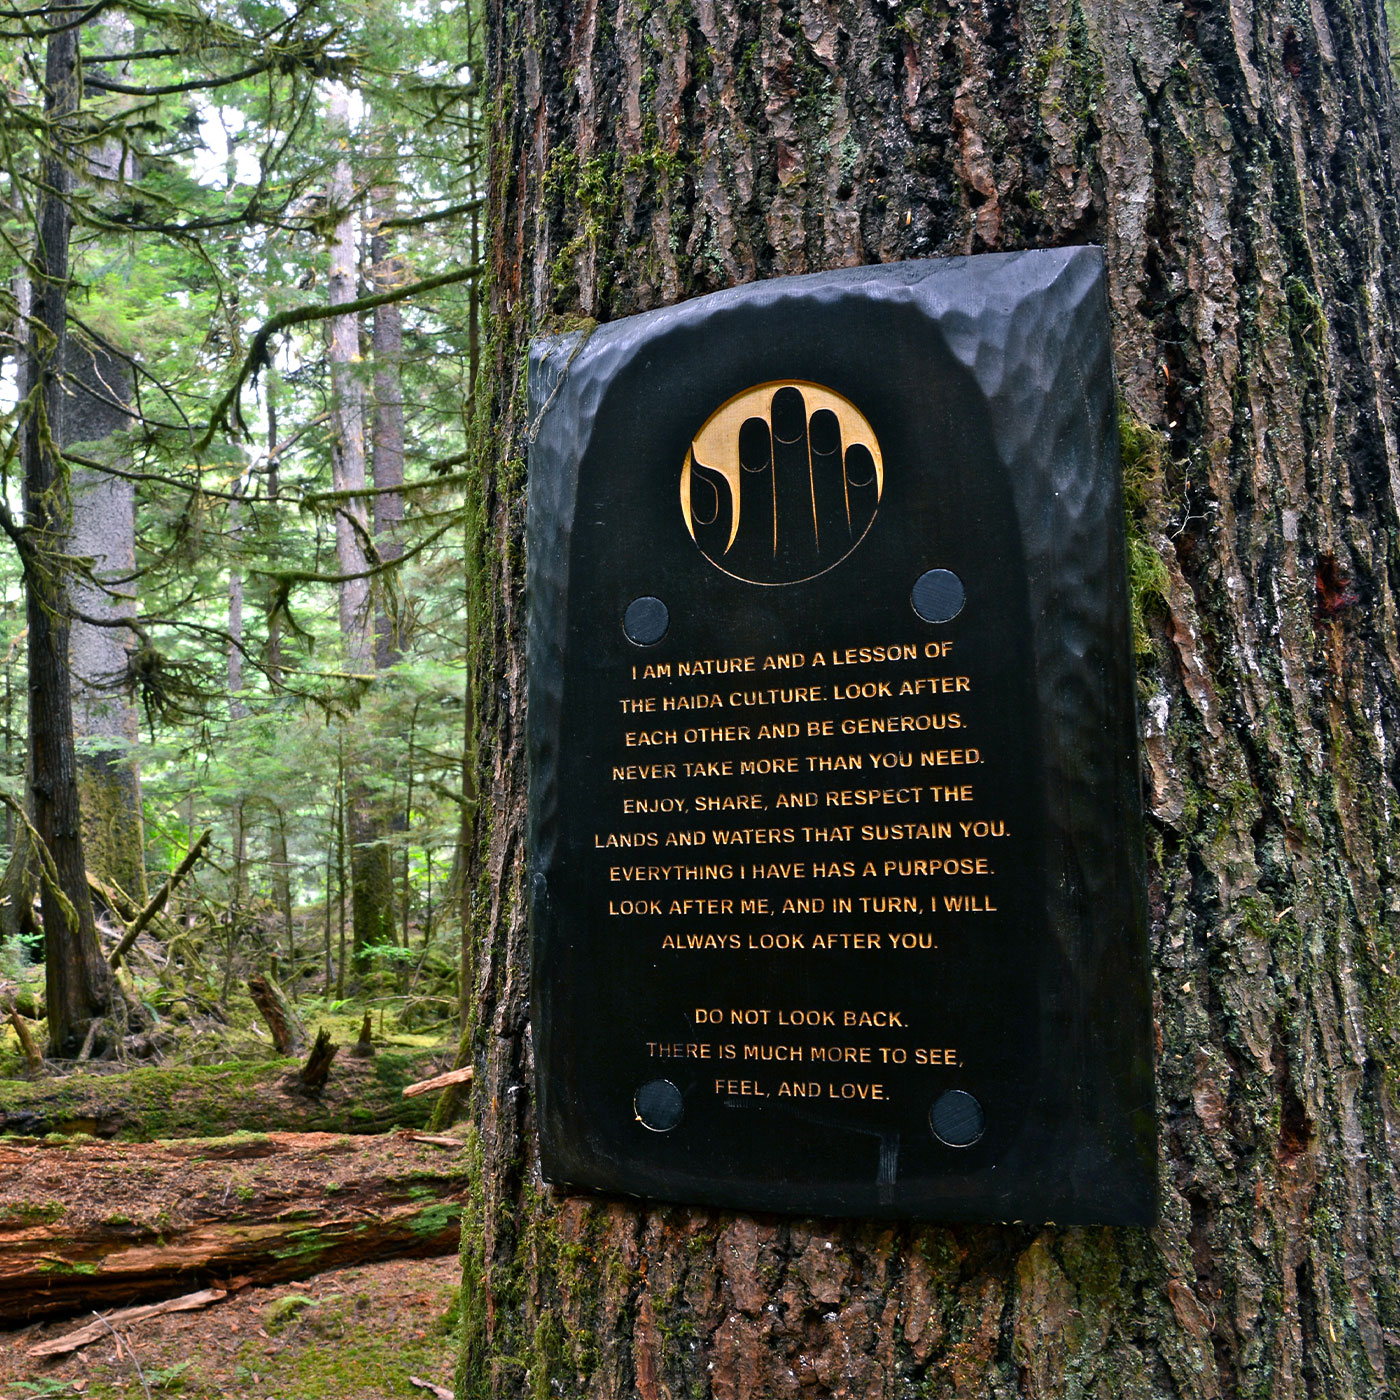 BC Parks Experiential signage design for the Golden Spruce Trail on Haida Gwaii by Flipside Creative.